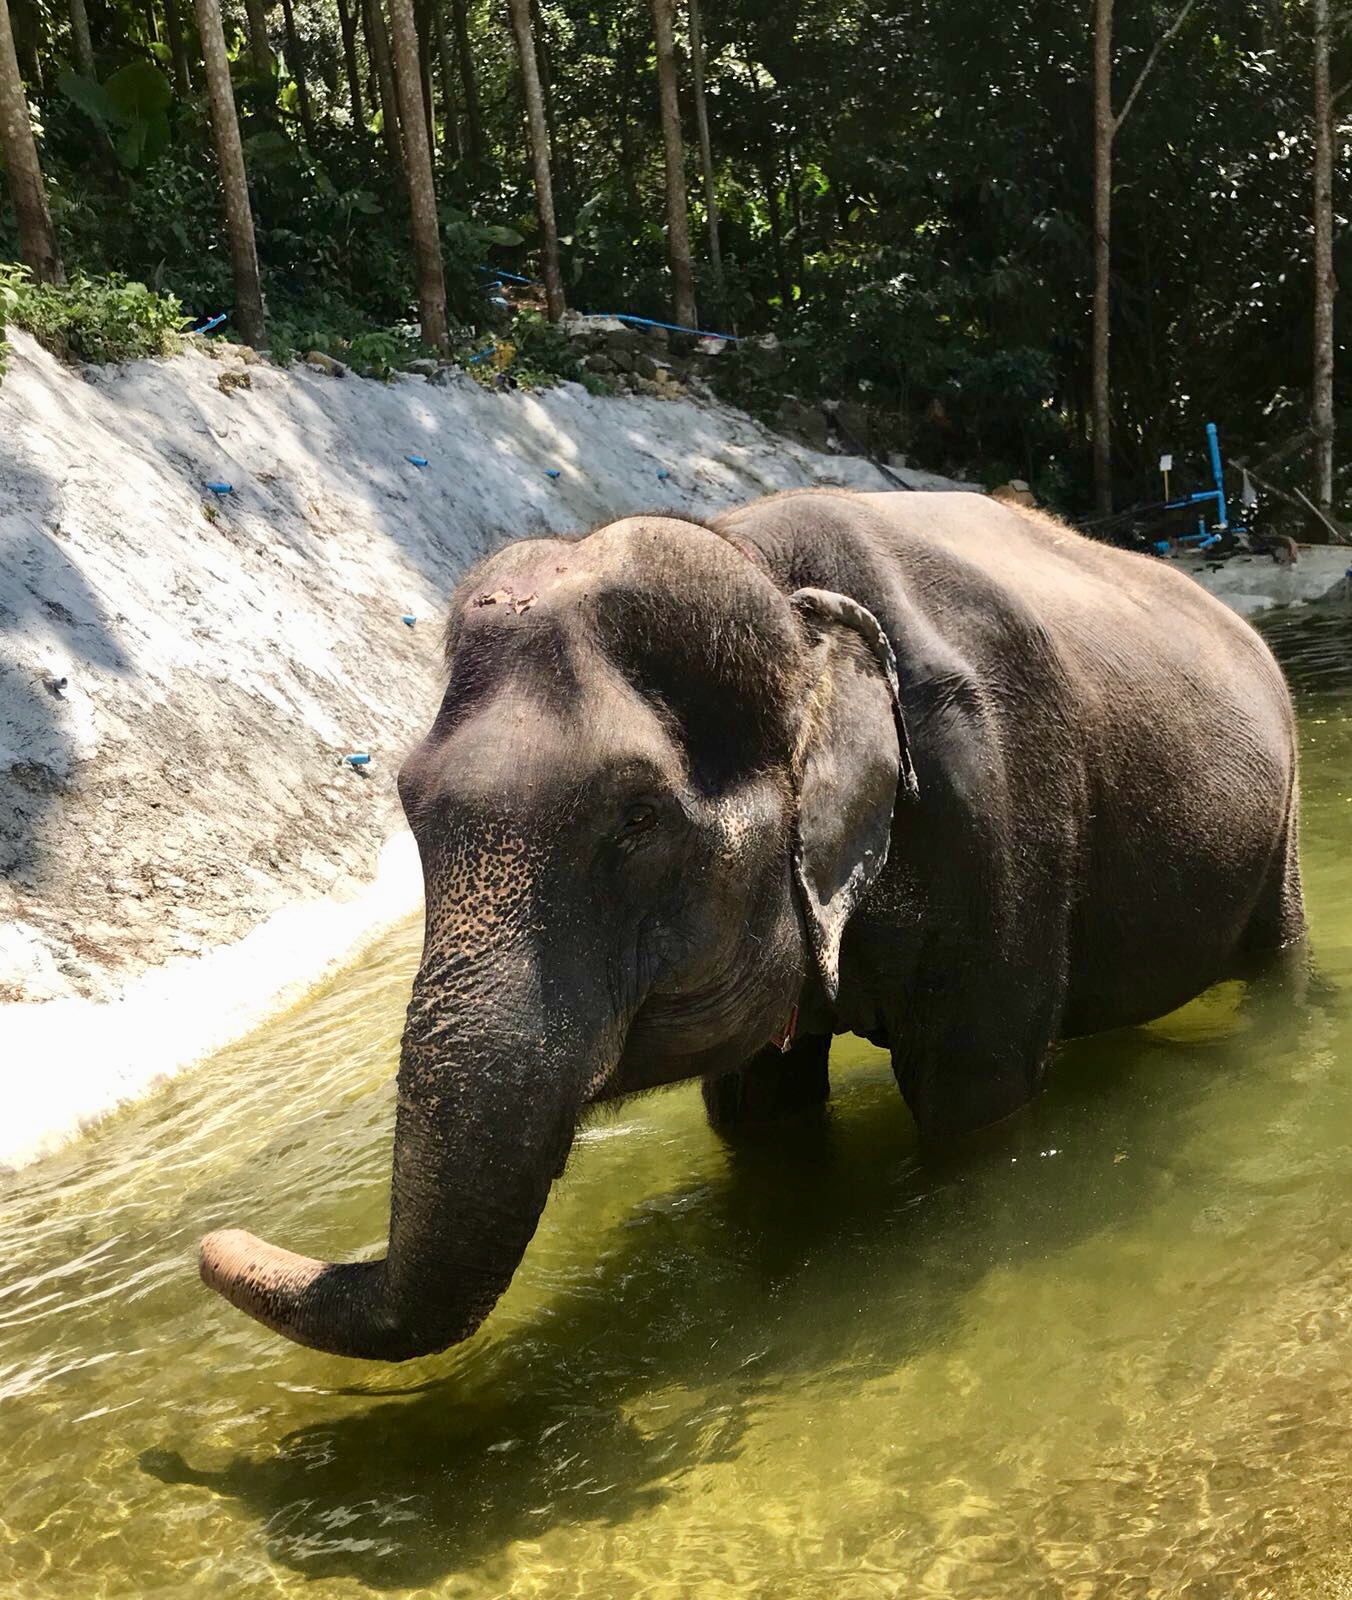 Lola, a 45 year old retired Asian elephant